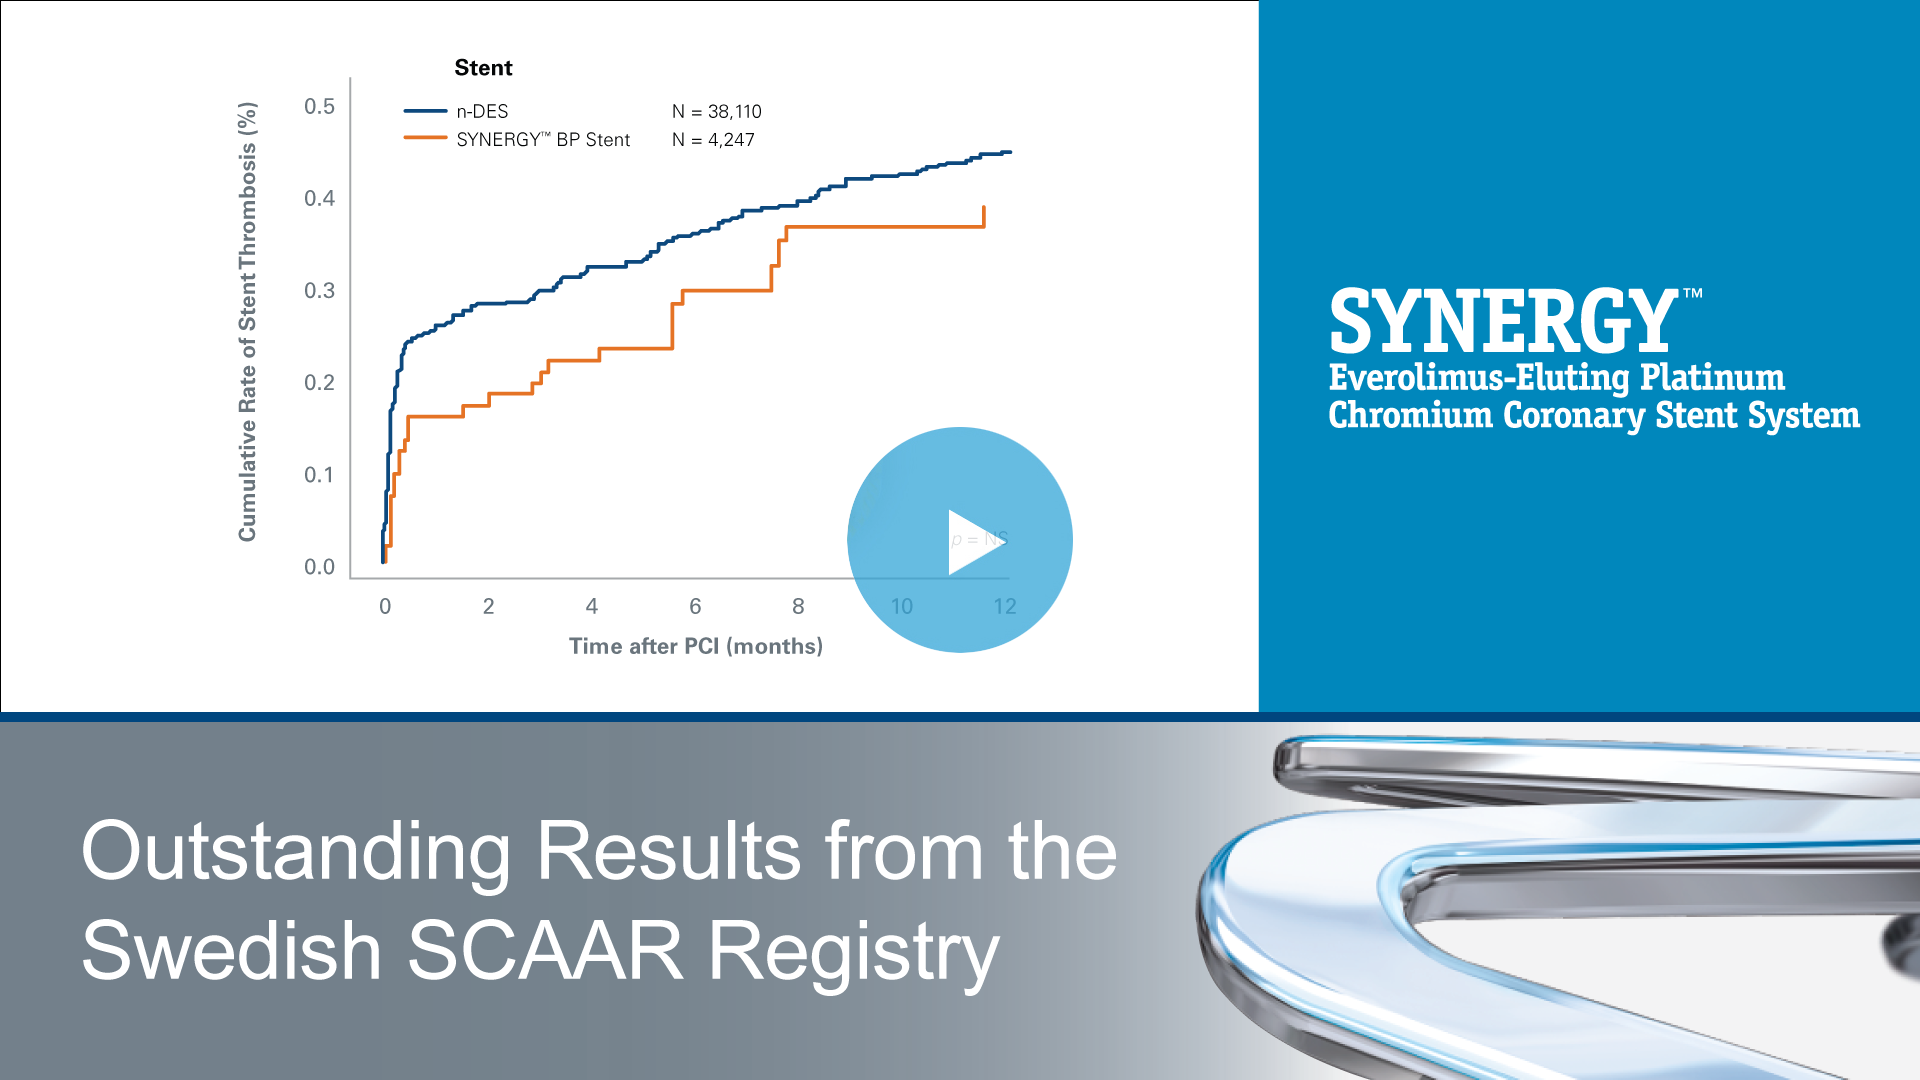 Outstanding Results from the Swedish SCAAR Registry